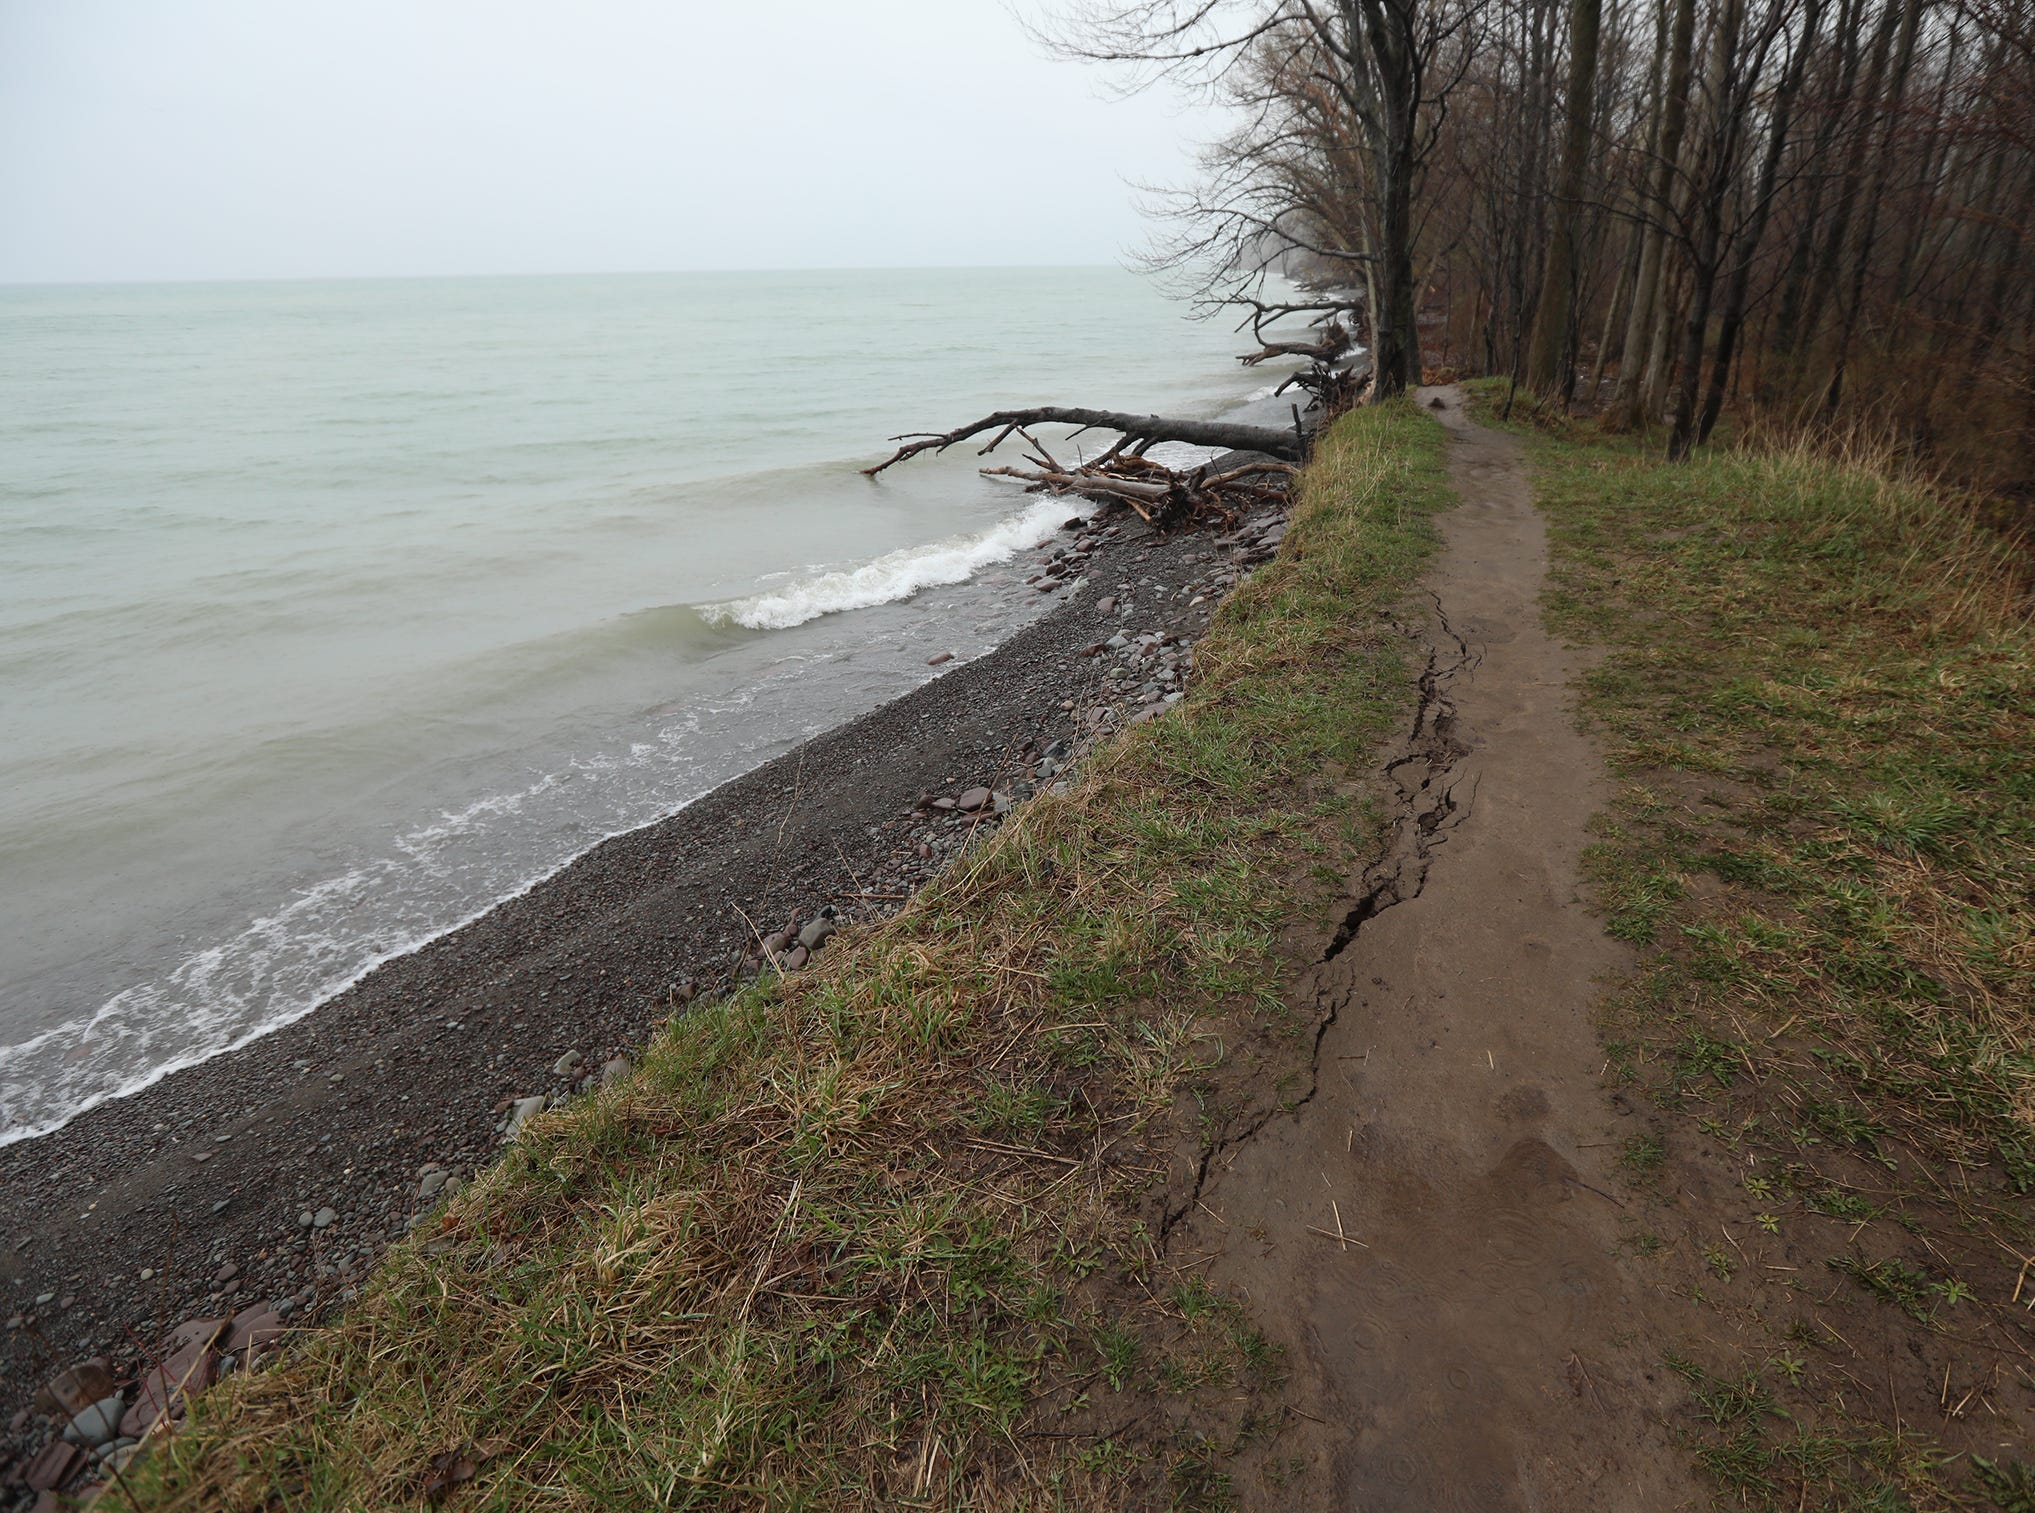 A trail along Lake Ontario is starting to show signs of erosion.